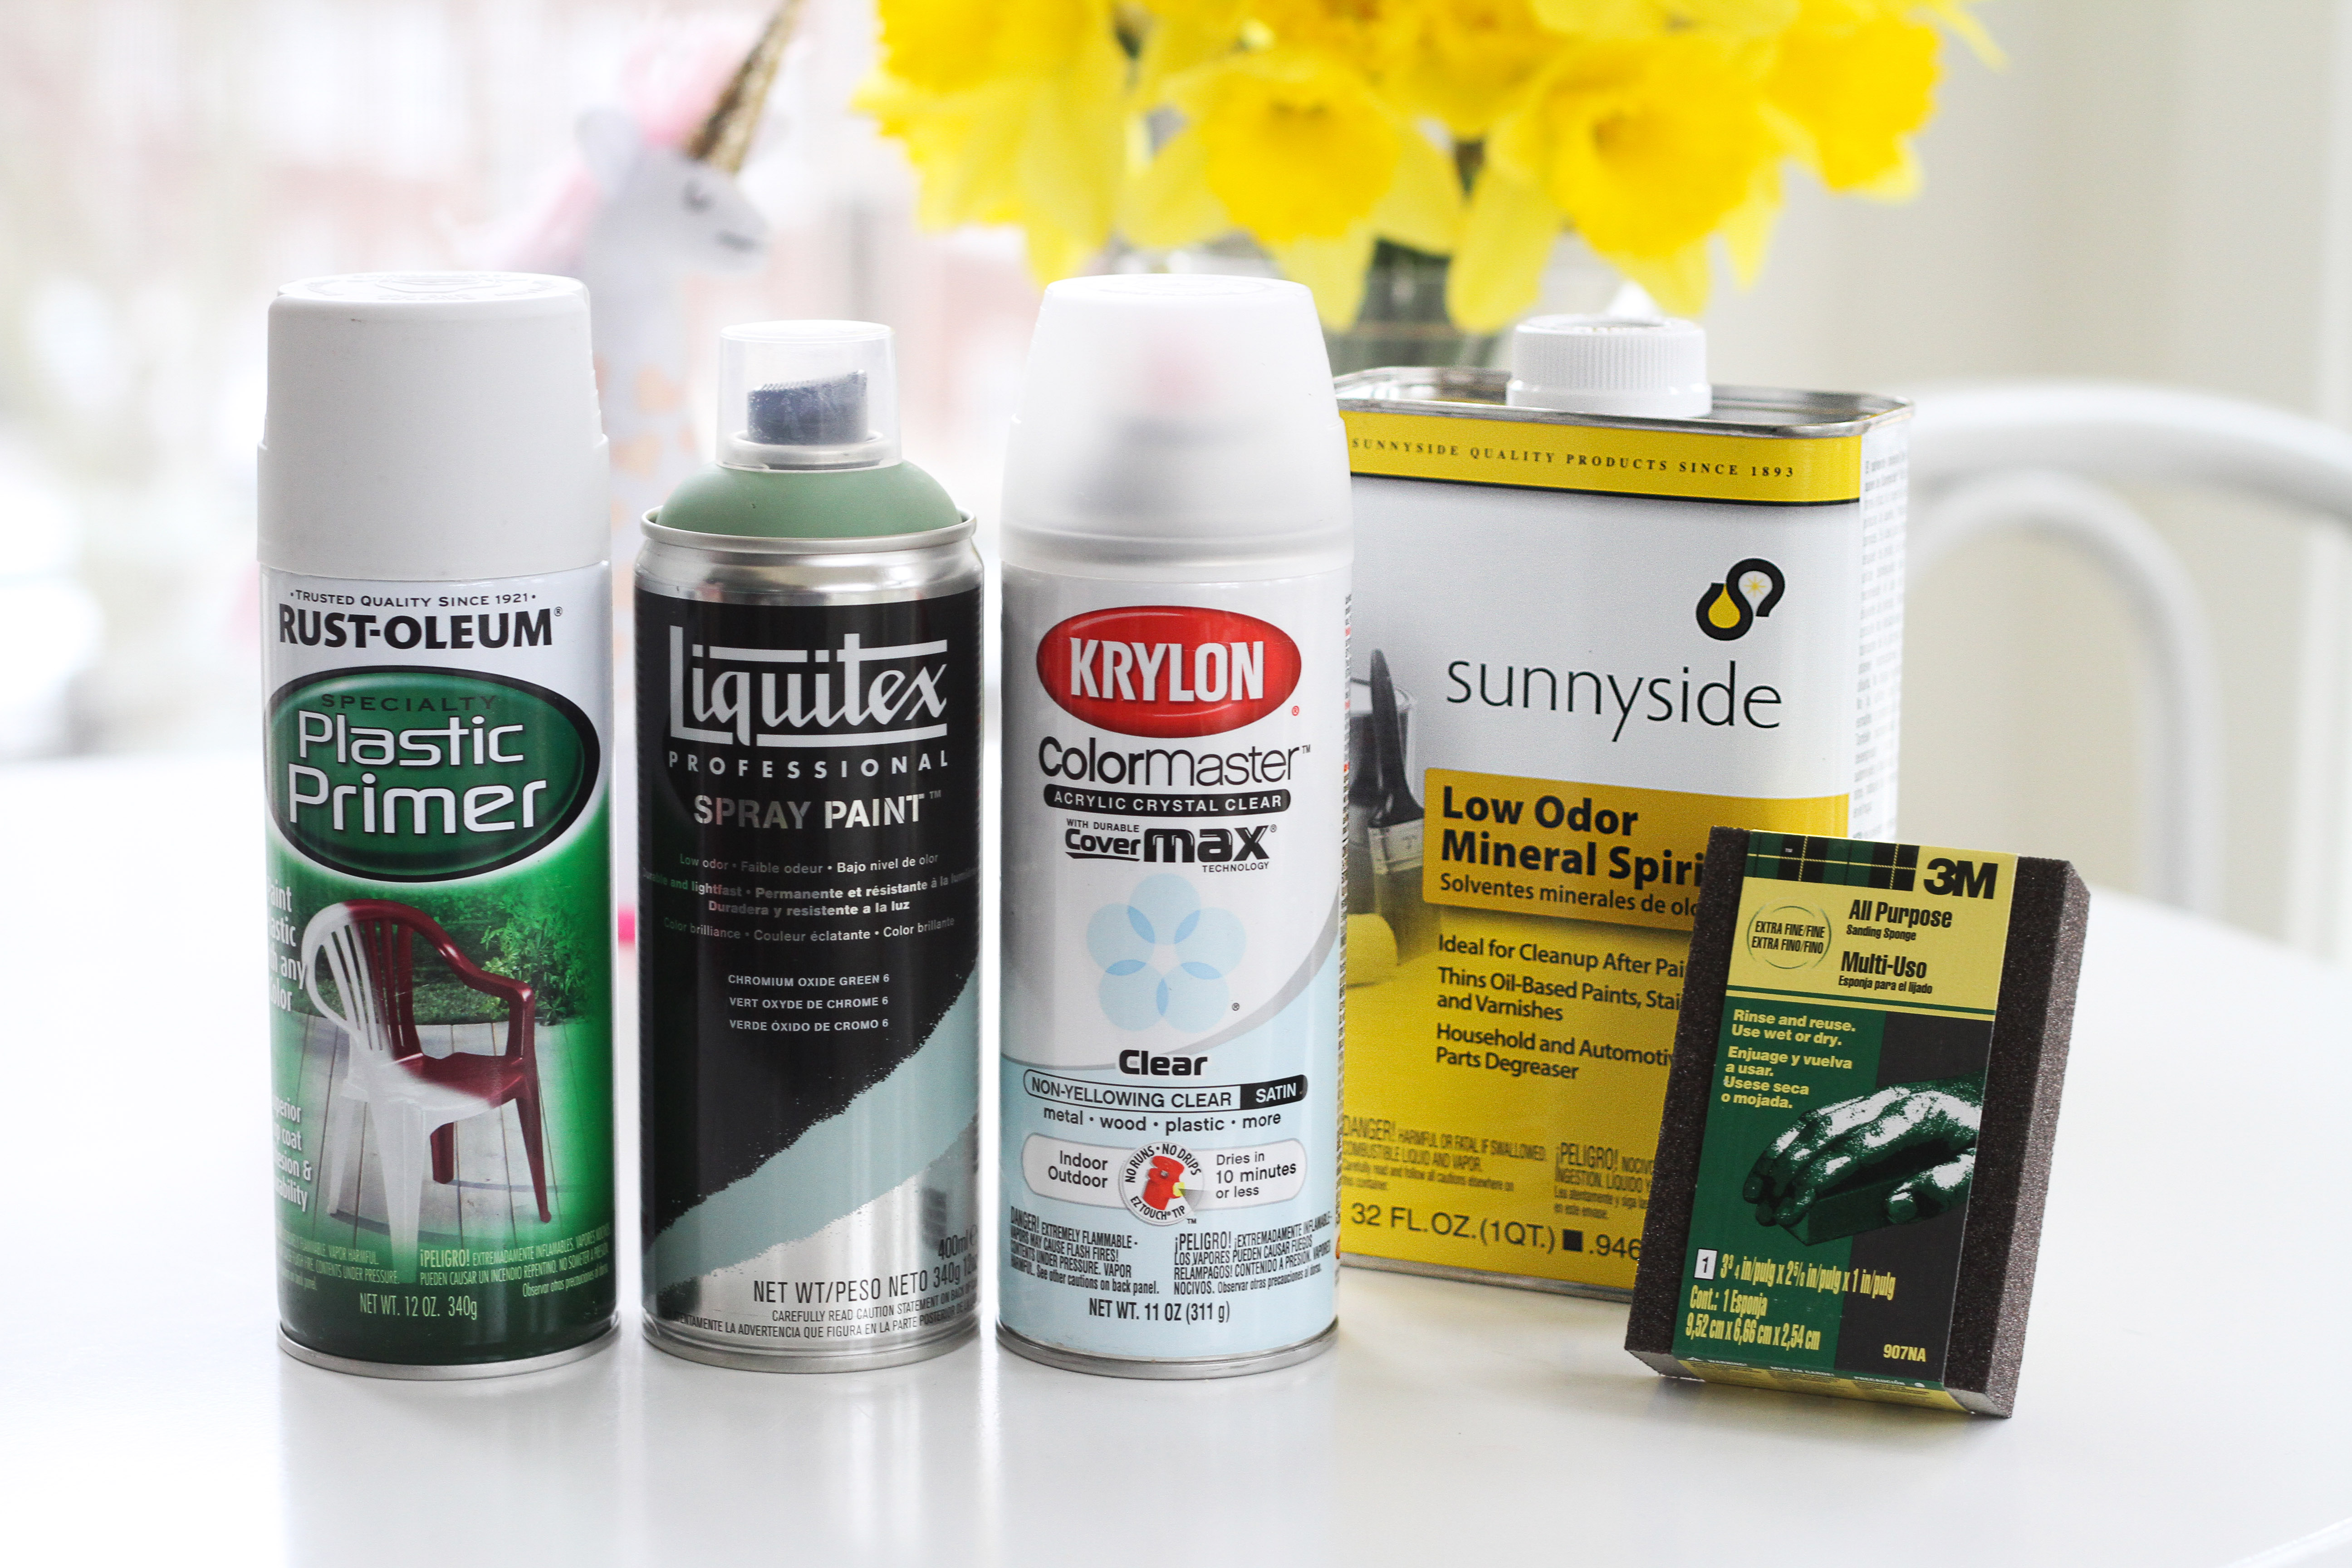 Learn How To Spray Paint Plastic the Right Way | Apartment